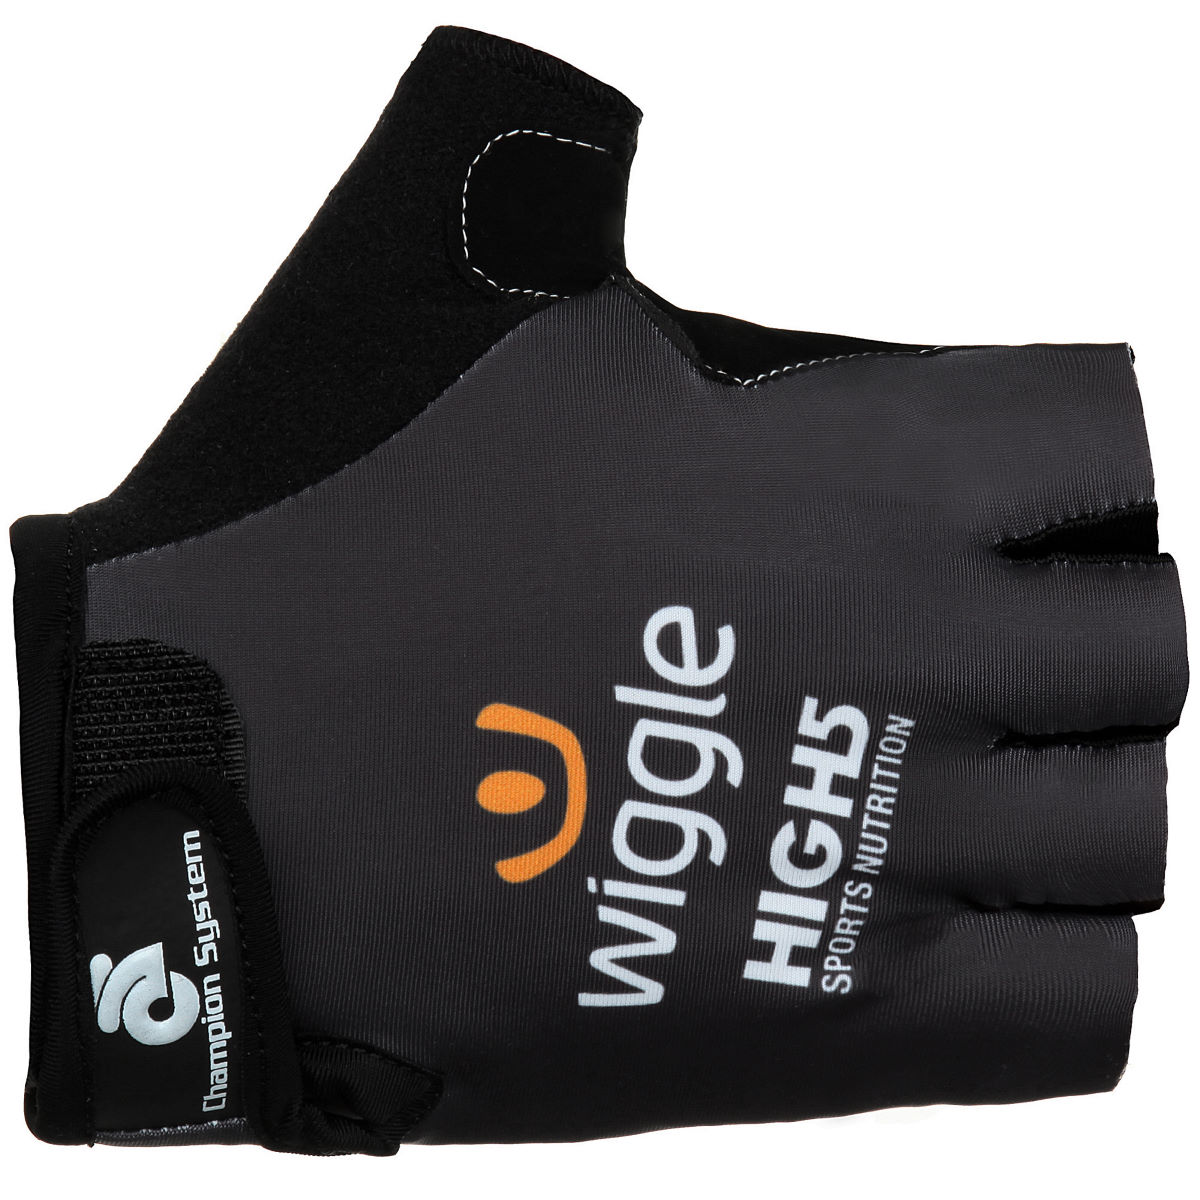 Wiggle High5 Team Summer Gloves   Team Accessories